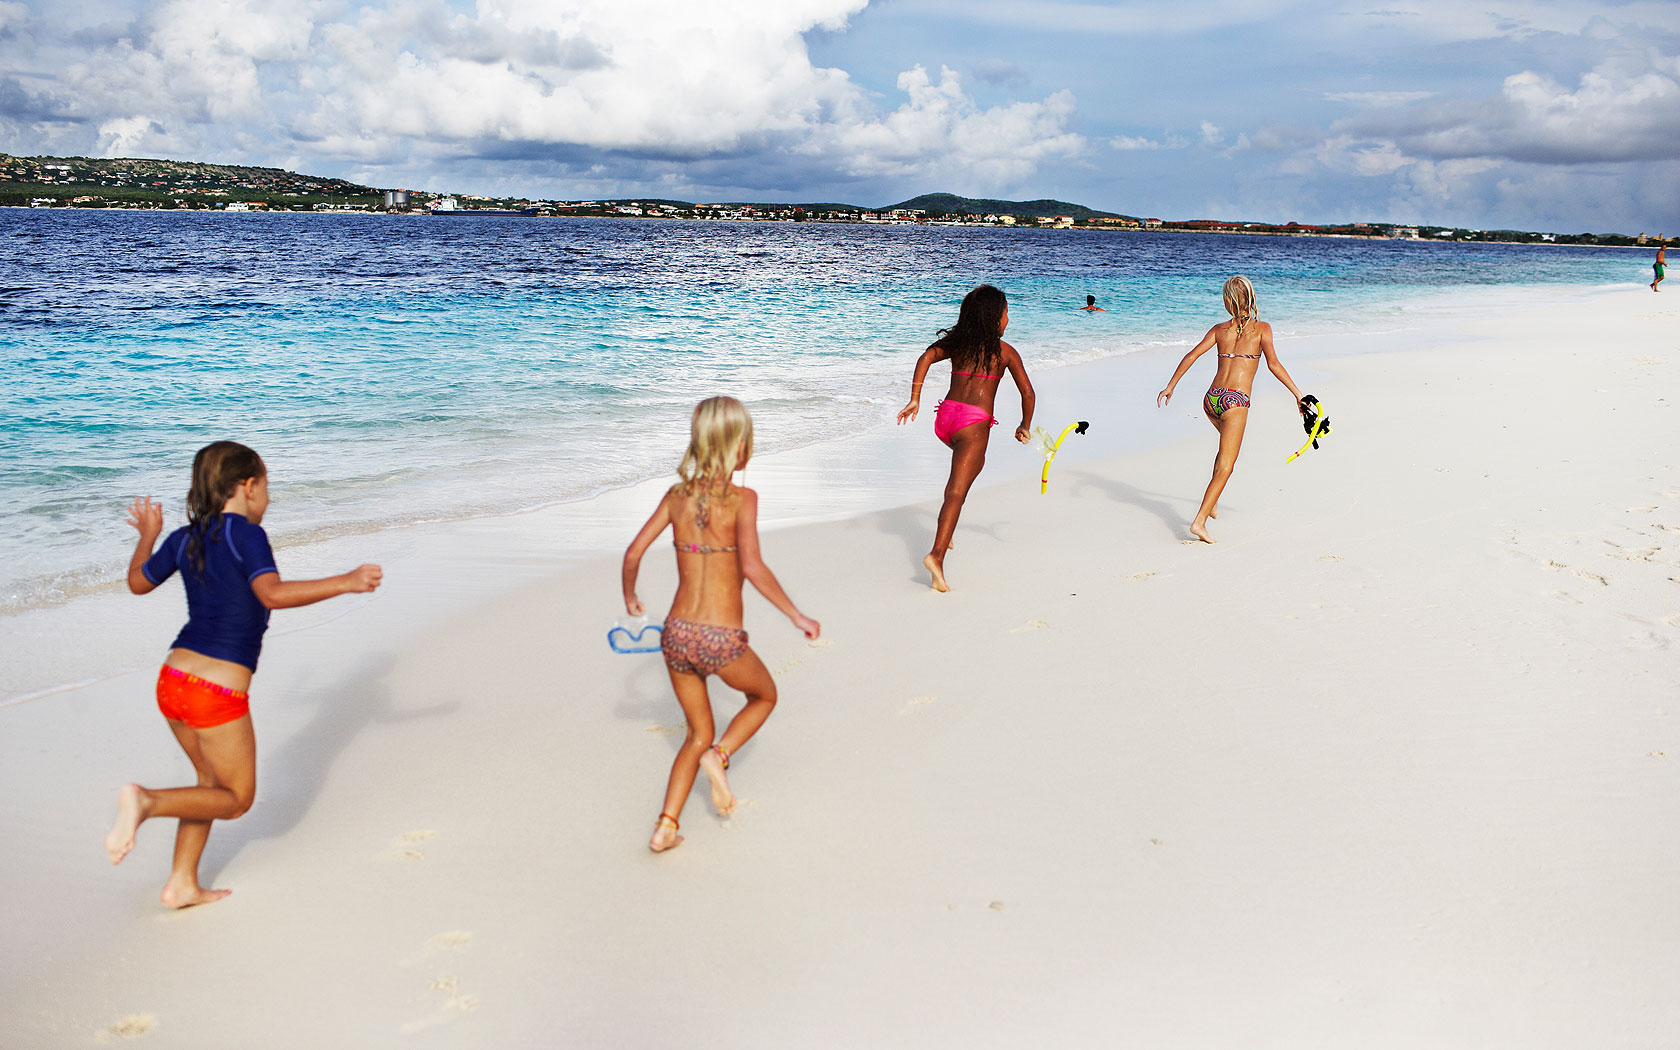 free online personals in bonaire Whether you're interested in christian dating, jewish dating, asian dating, black dating, senior dating, gay dating, lesbian dating, matchcom can help you find the date or relationship that fits you best search free through all of our online personals.